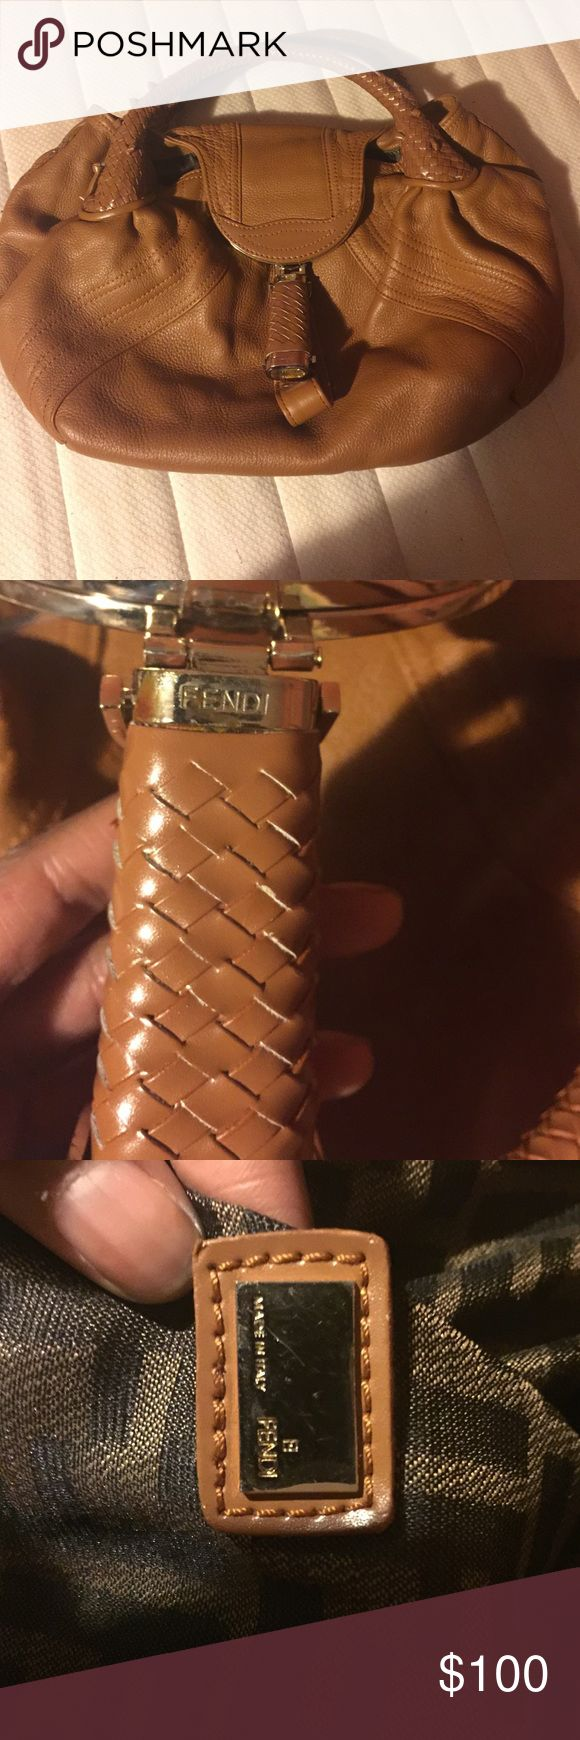 Camel Fendi spy bag Fendi bag. It has some around small  detailing around the side and bottom, but still in great shape. I will except offers! Fendi Bags